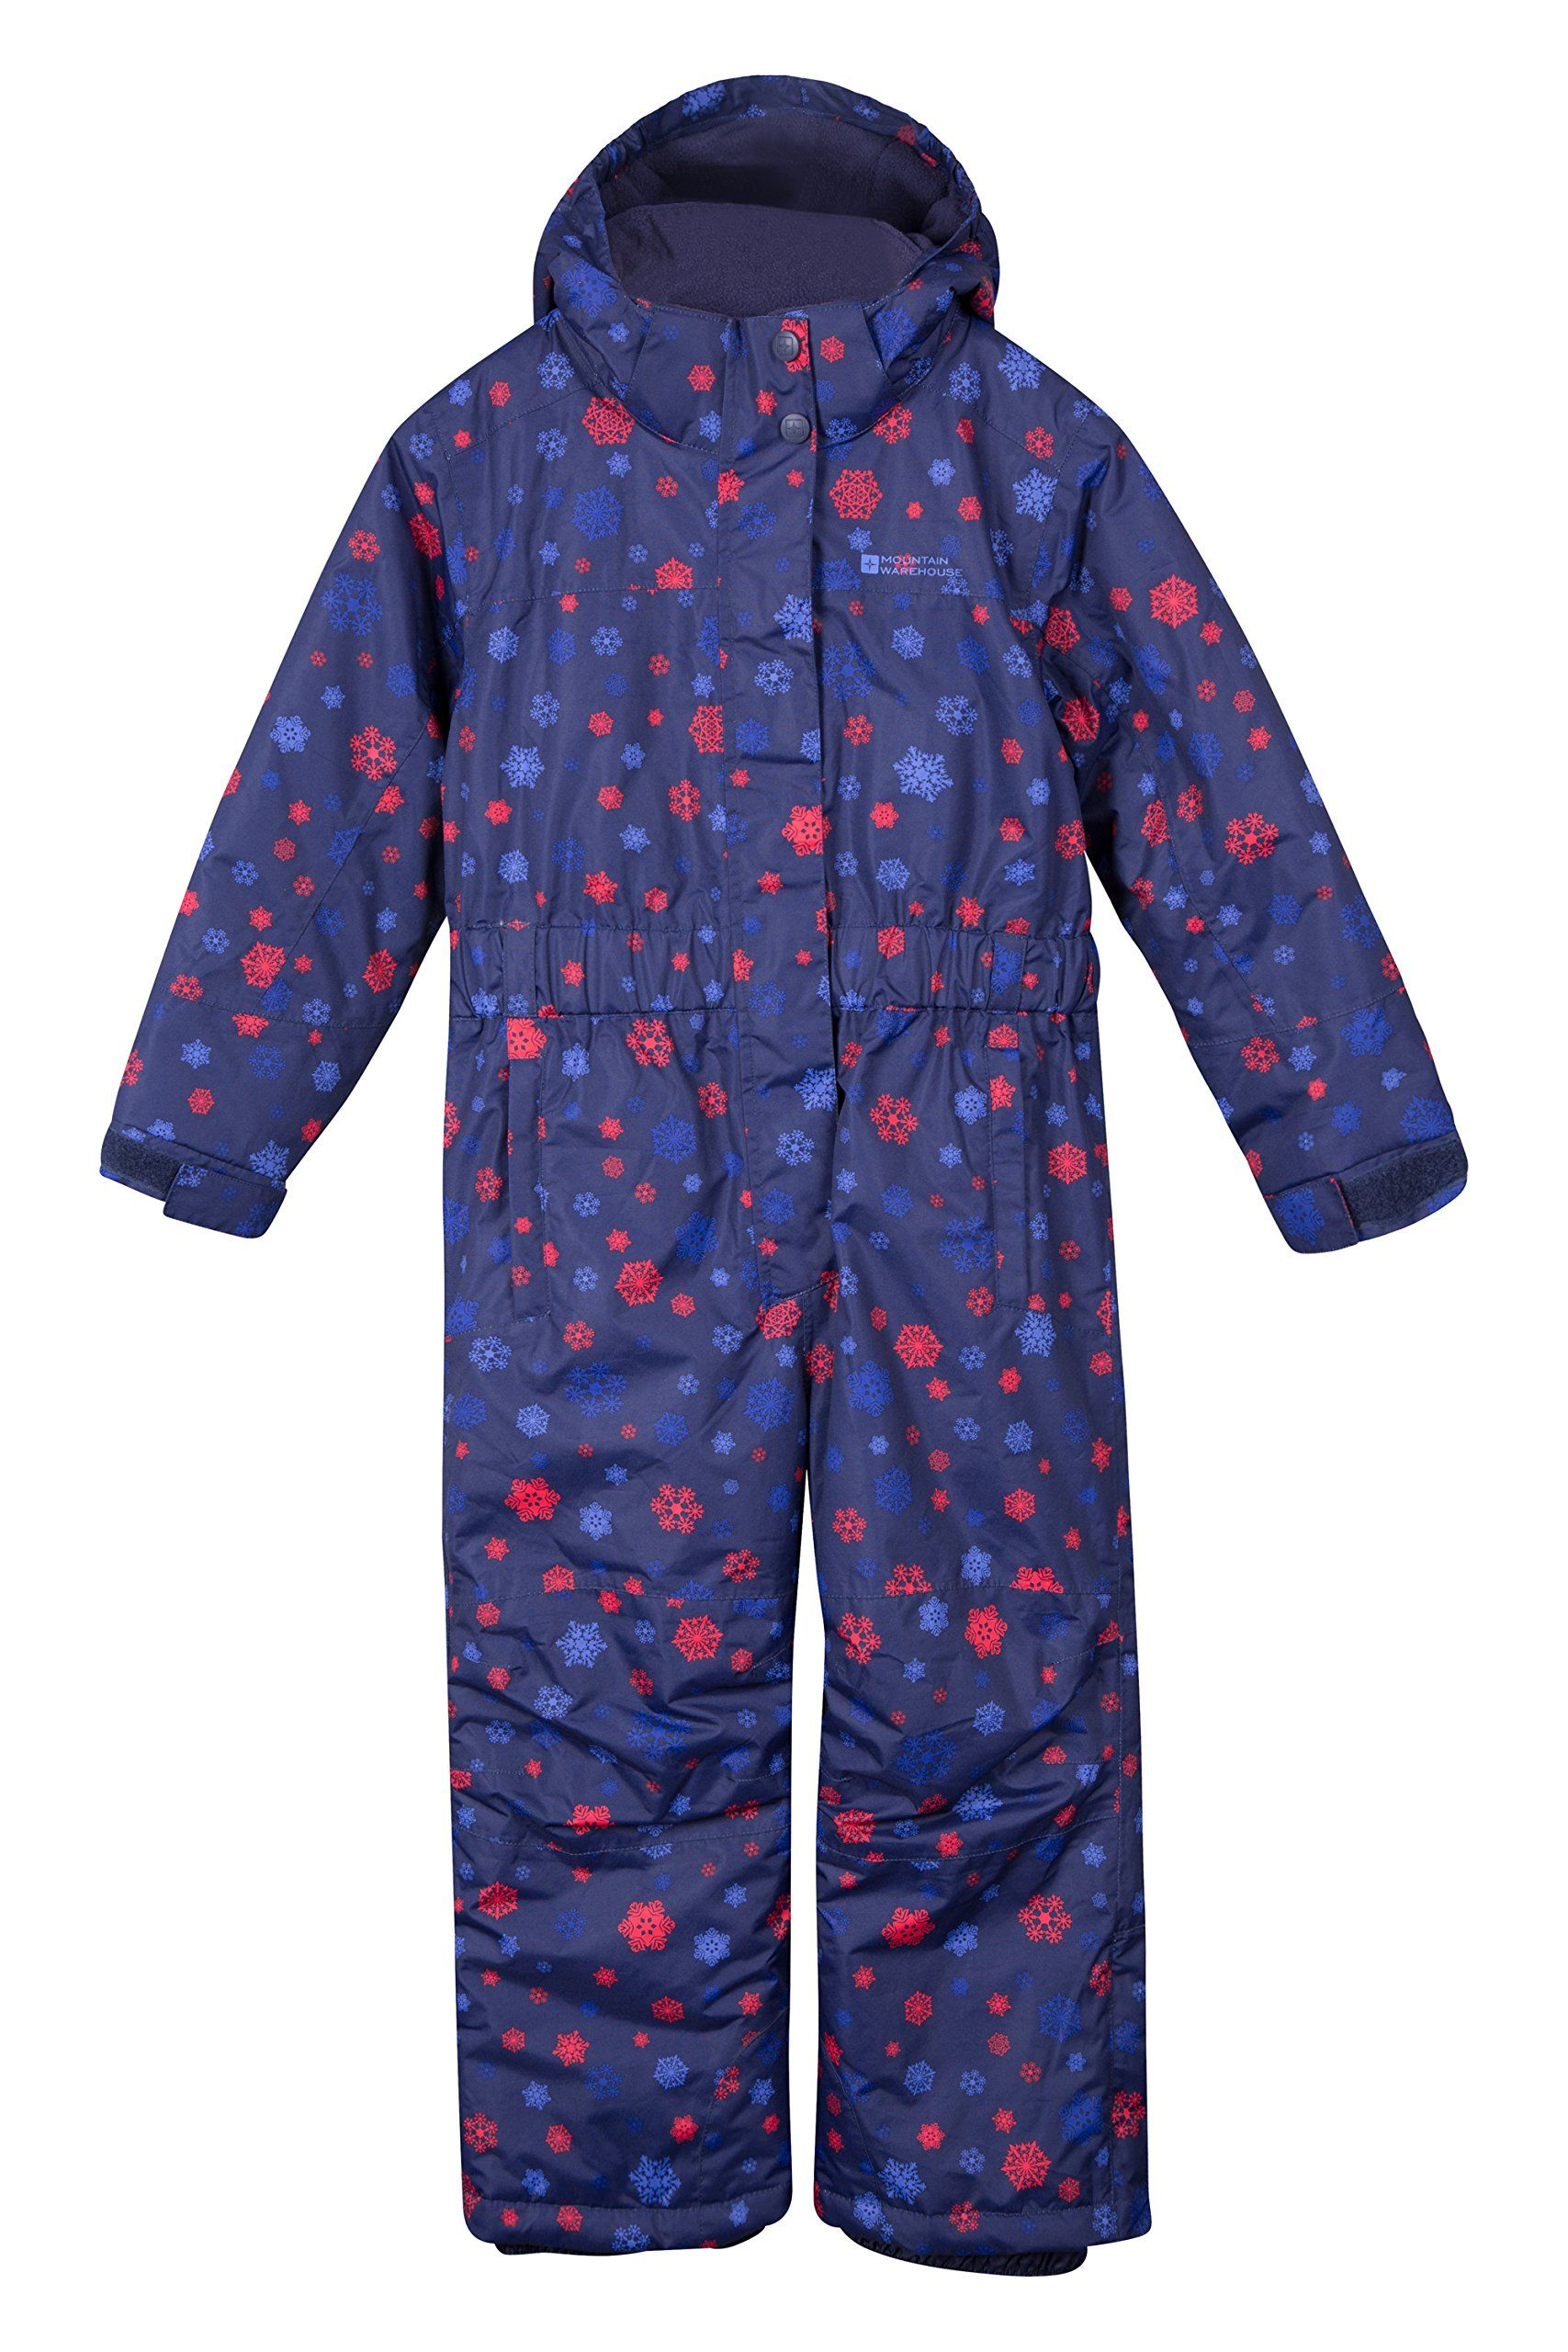 e3504854a Mountain Warehouse Cloud Printed Kids All in One Snowsuit Navy 2-3 ...